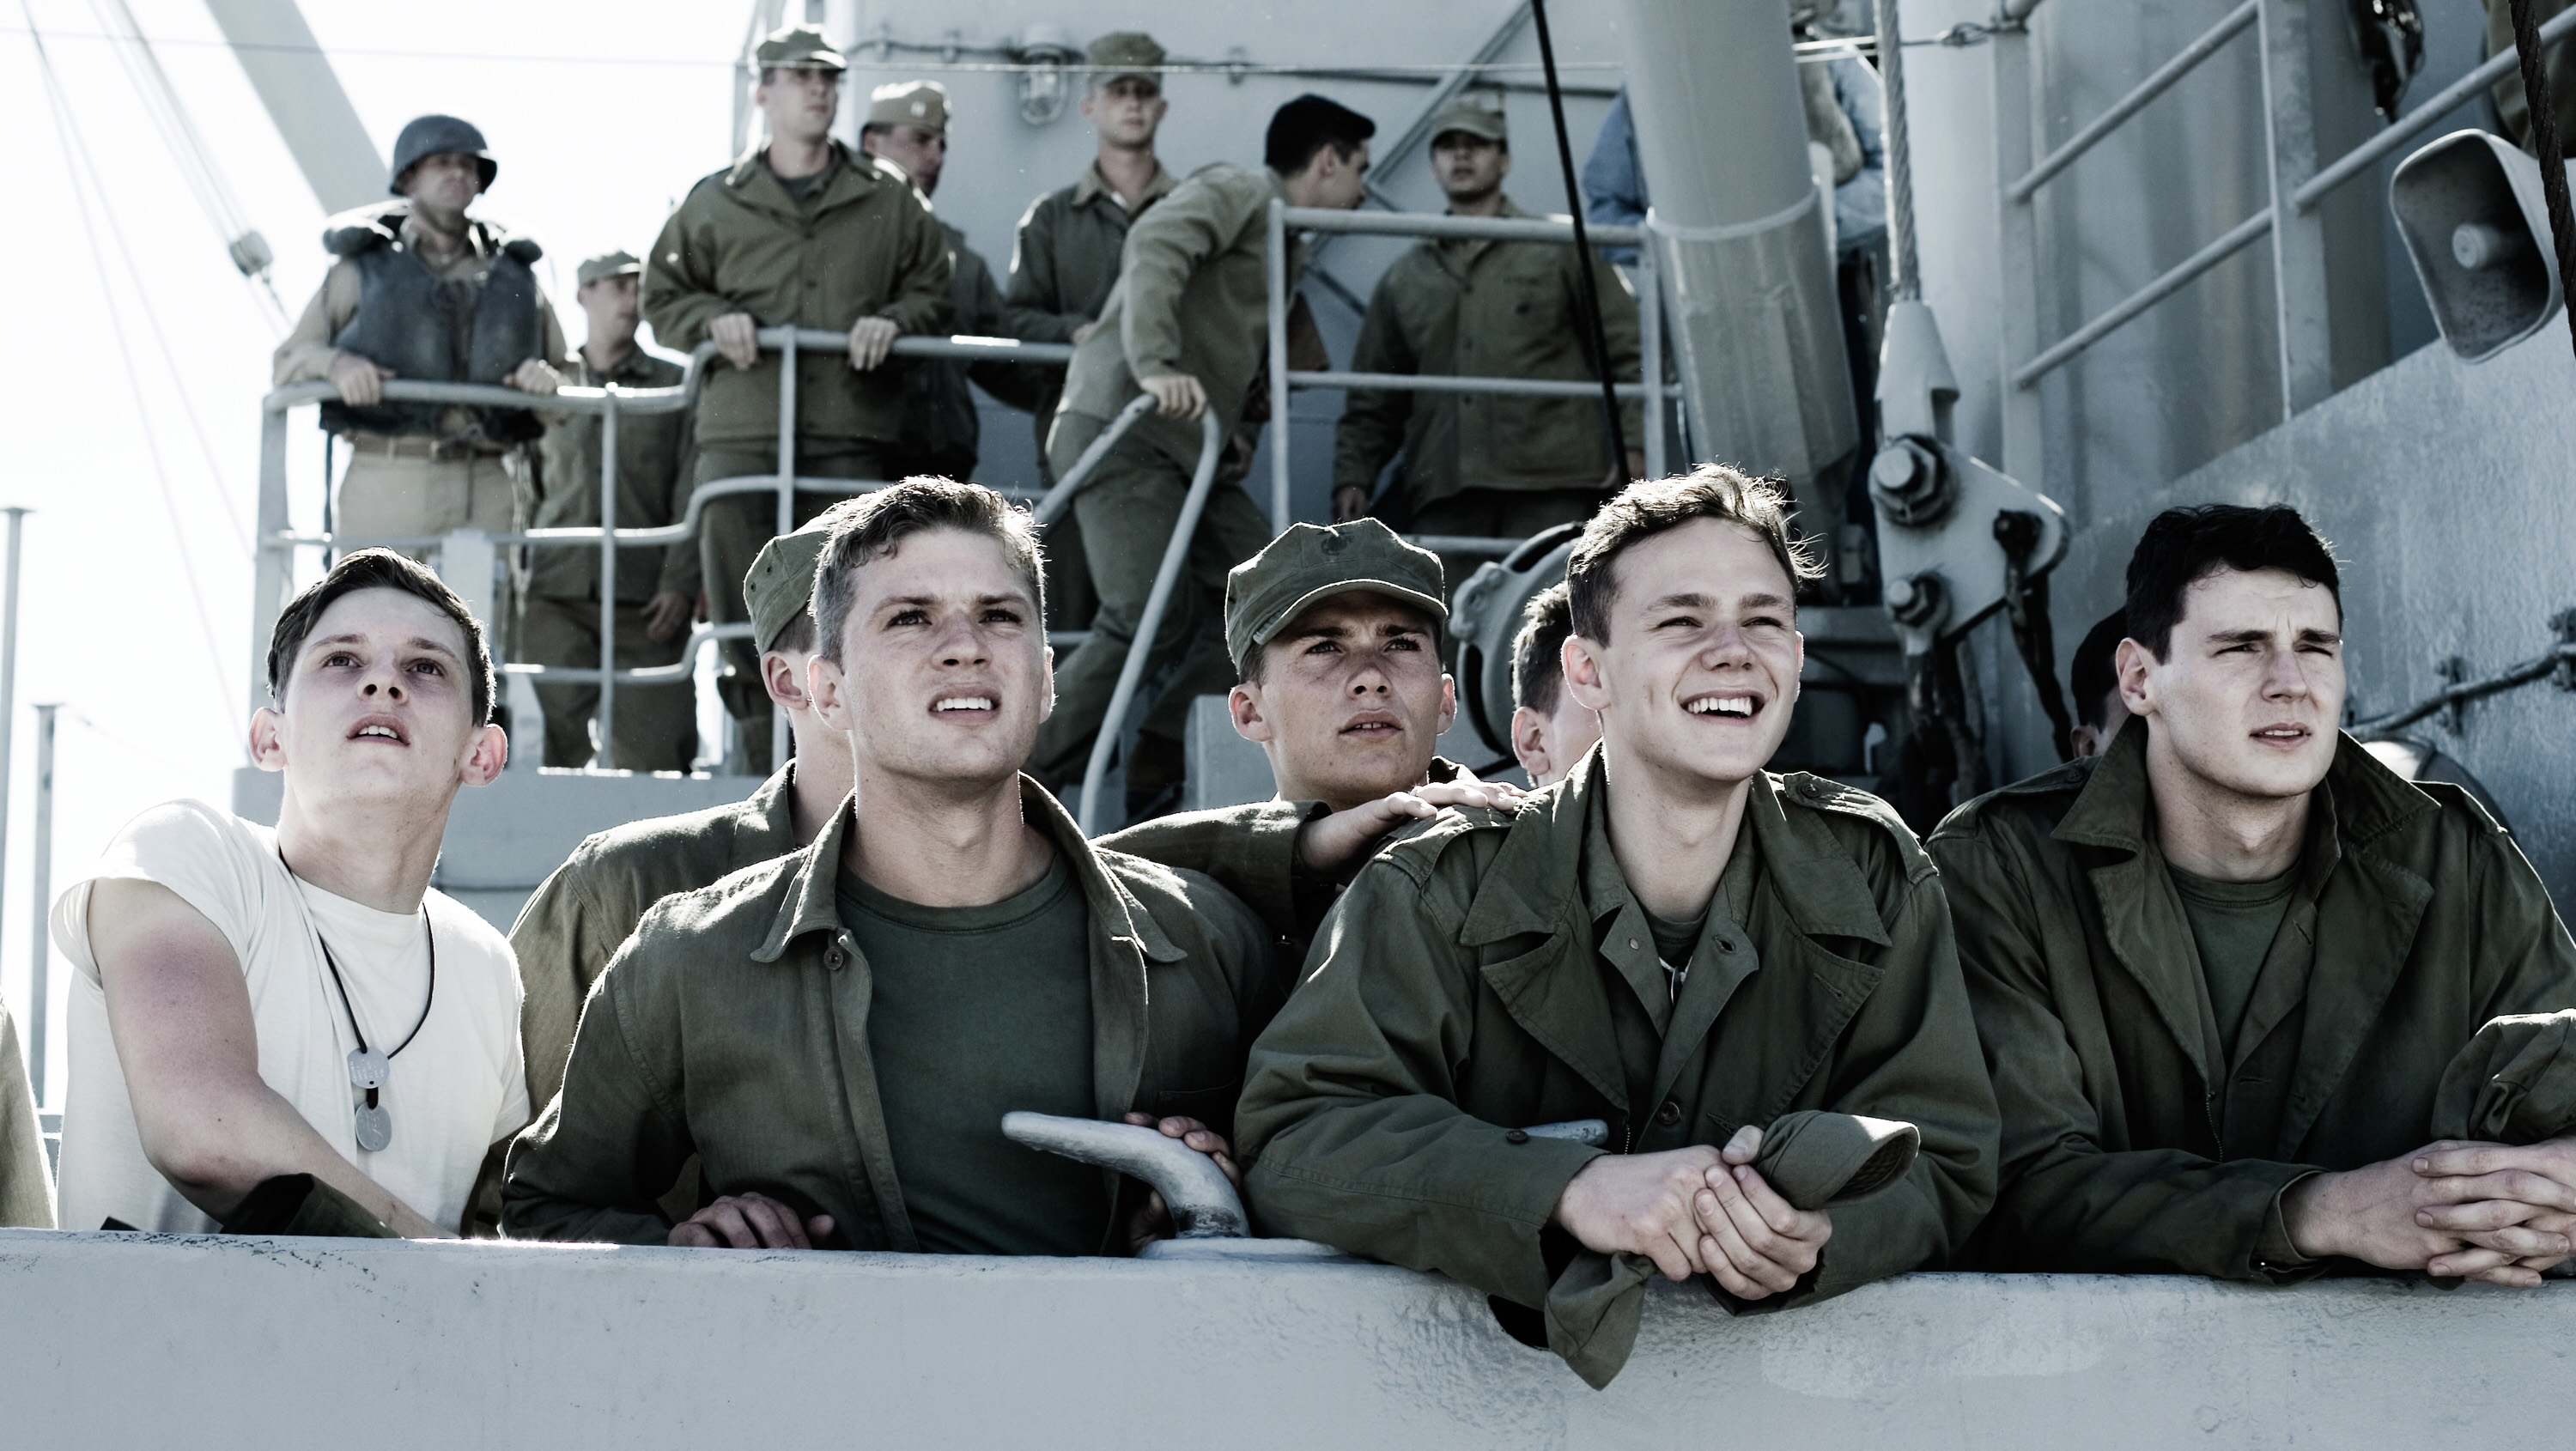 Flags of Our Fathers (2006) Directed by Clint Eastwood Shown from left: Jamie Bell, Ryan Phillippe, Scott Reeves, Joseph Cross, Ben Walker